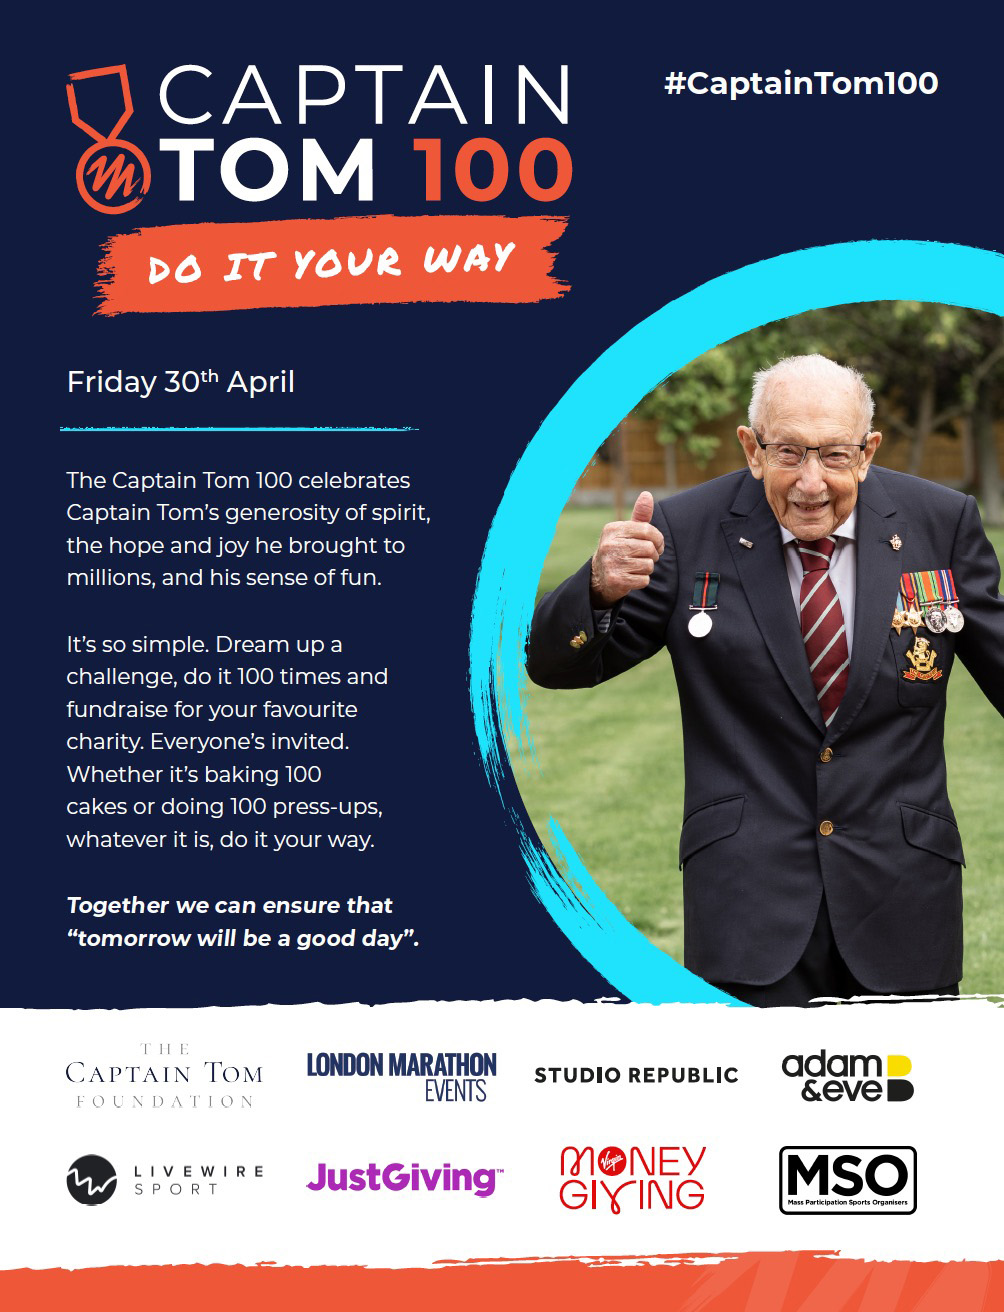 Take Part in the Captain Tom 100 Challenge